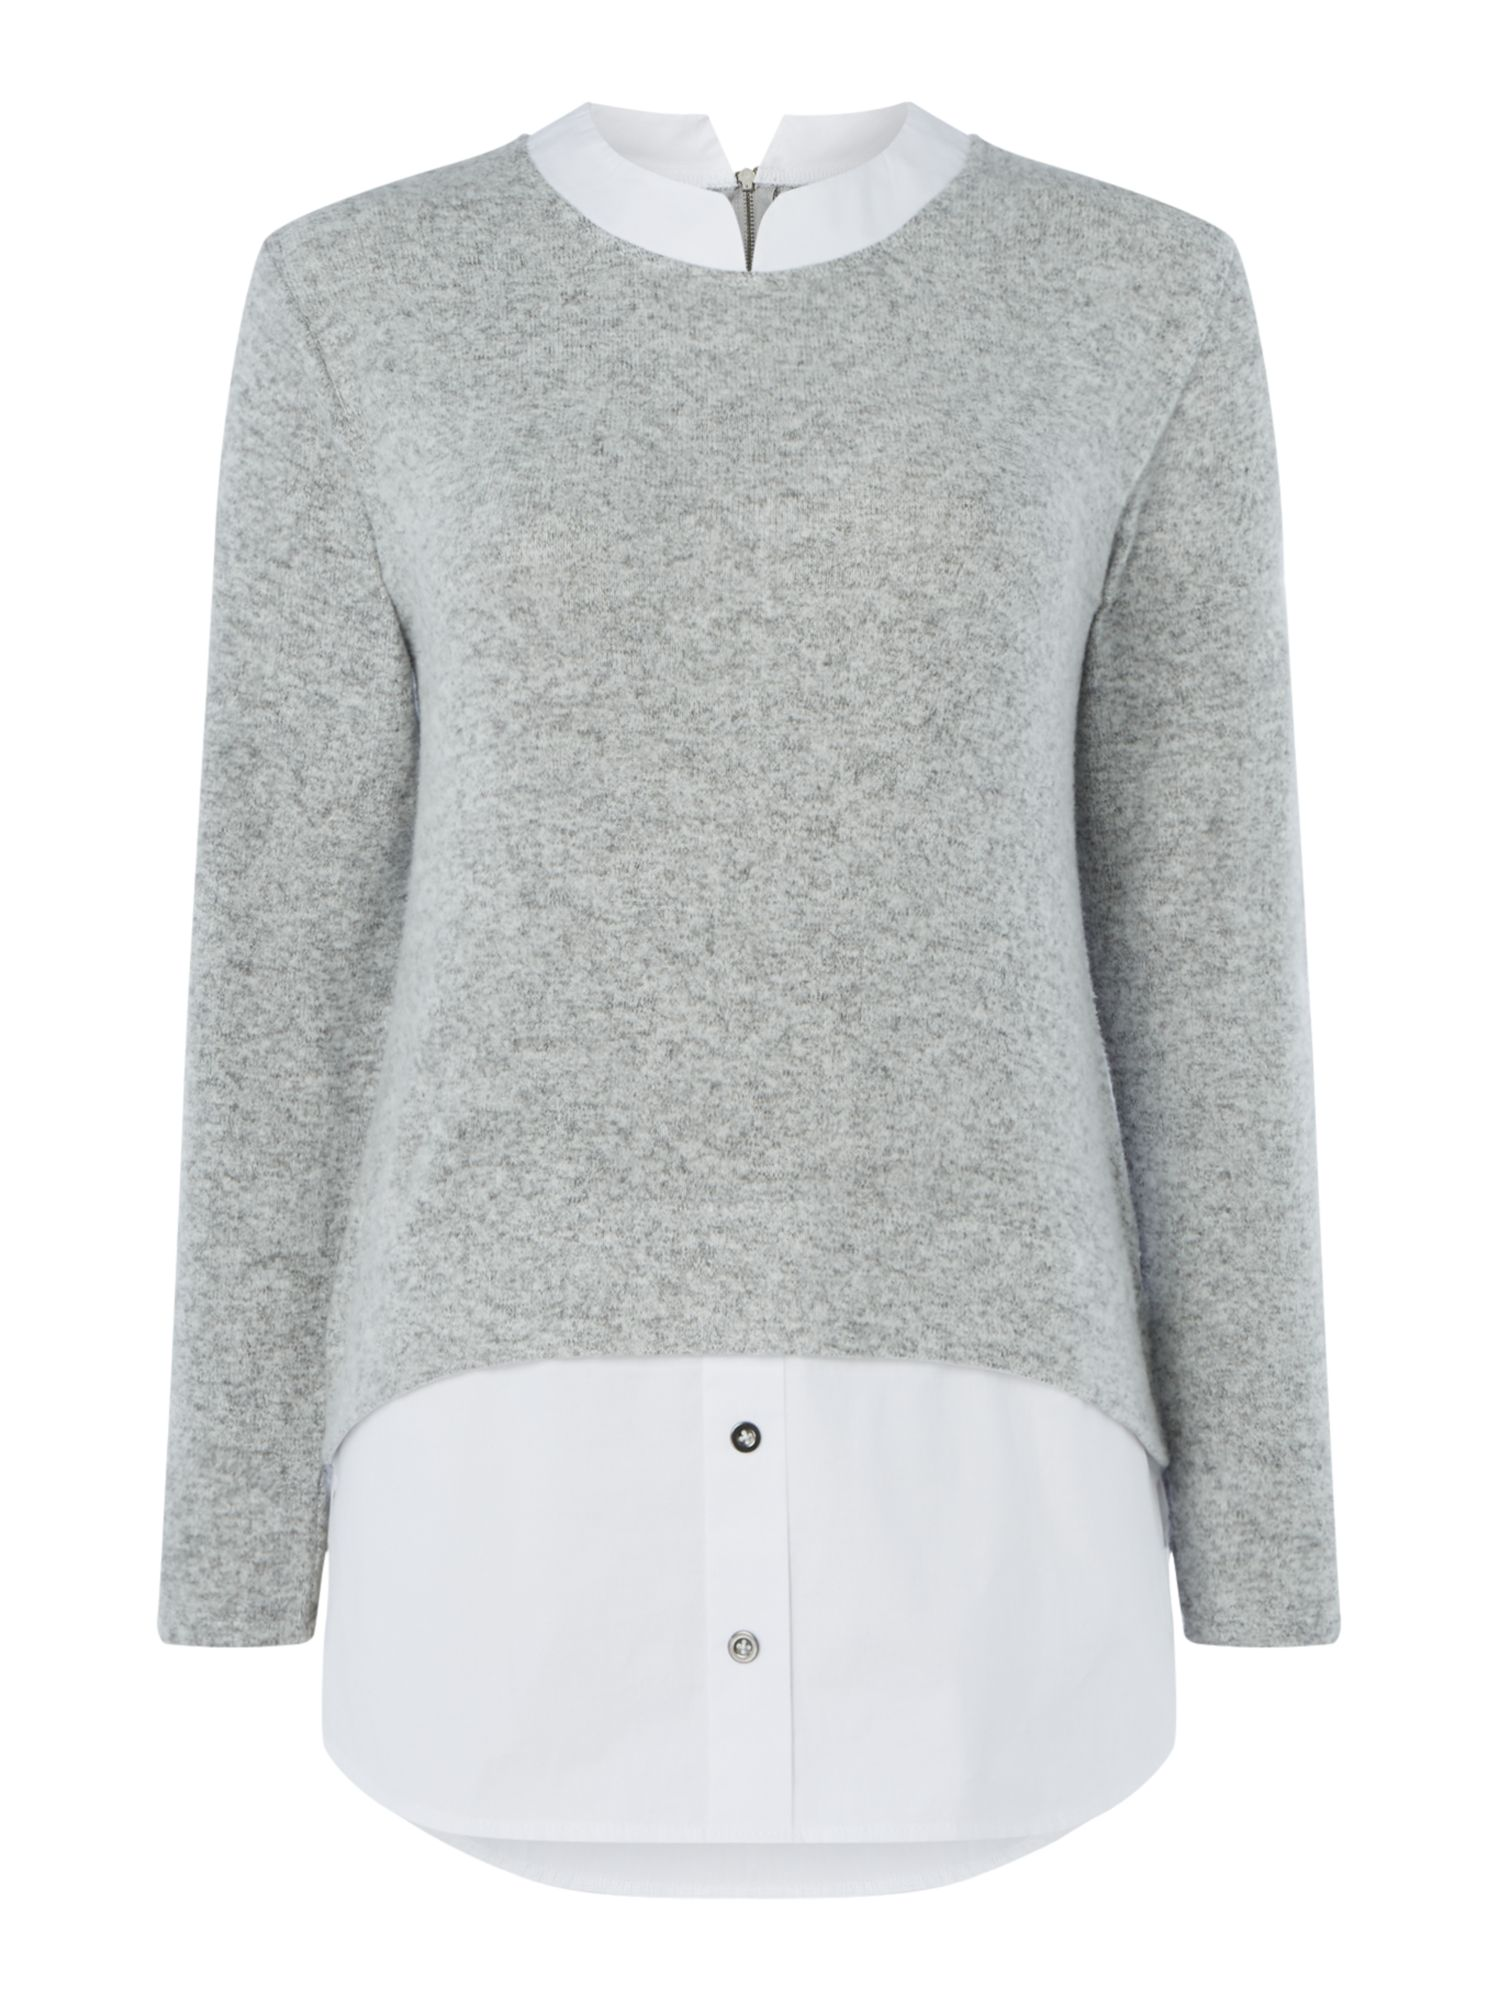 Maison De Nimes Cut and Sew Shirt Mix Jumper, Grey Marl